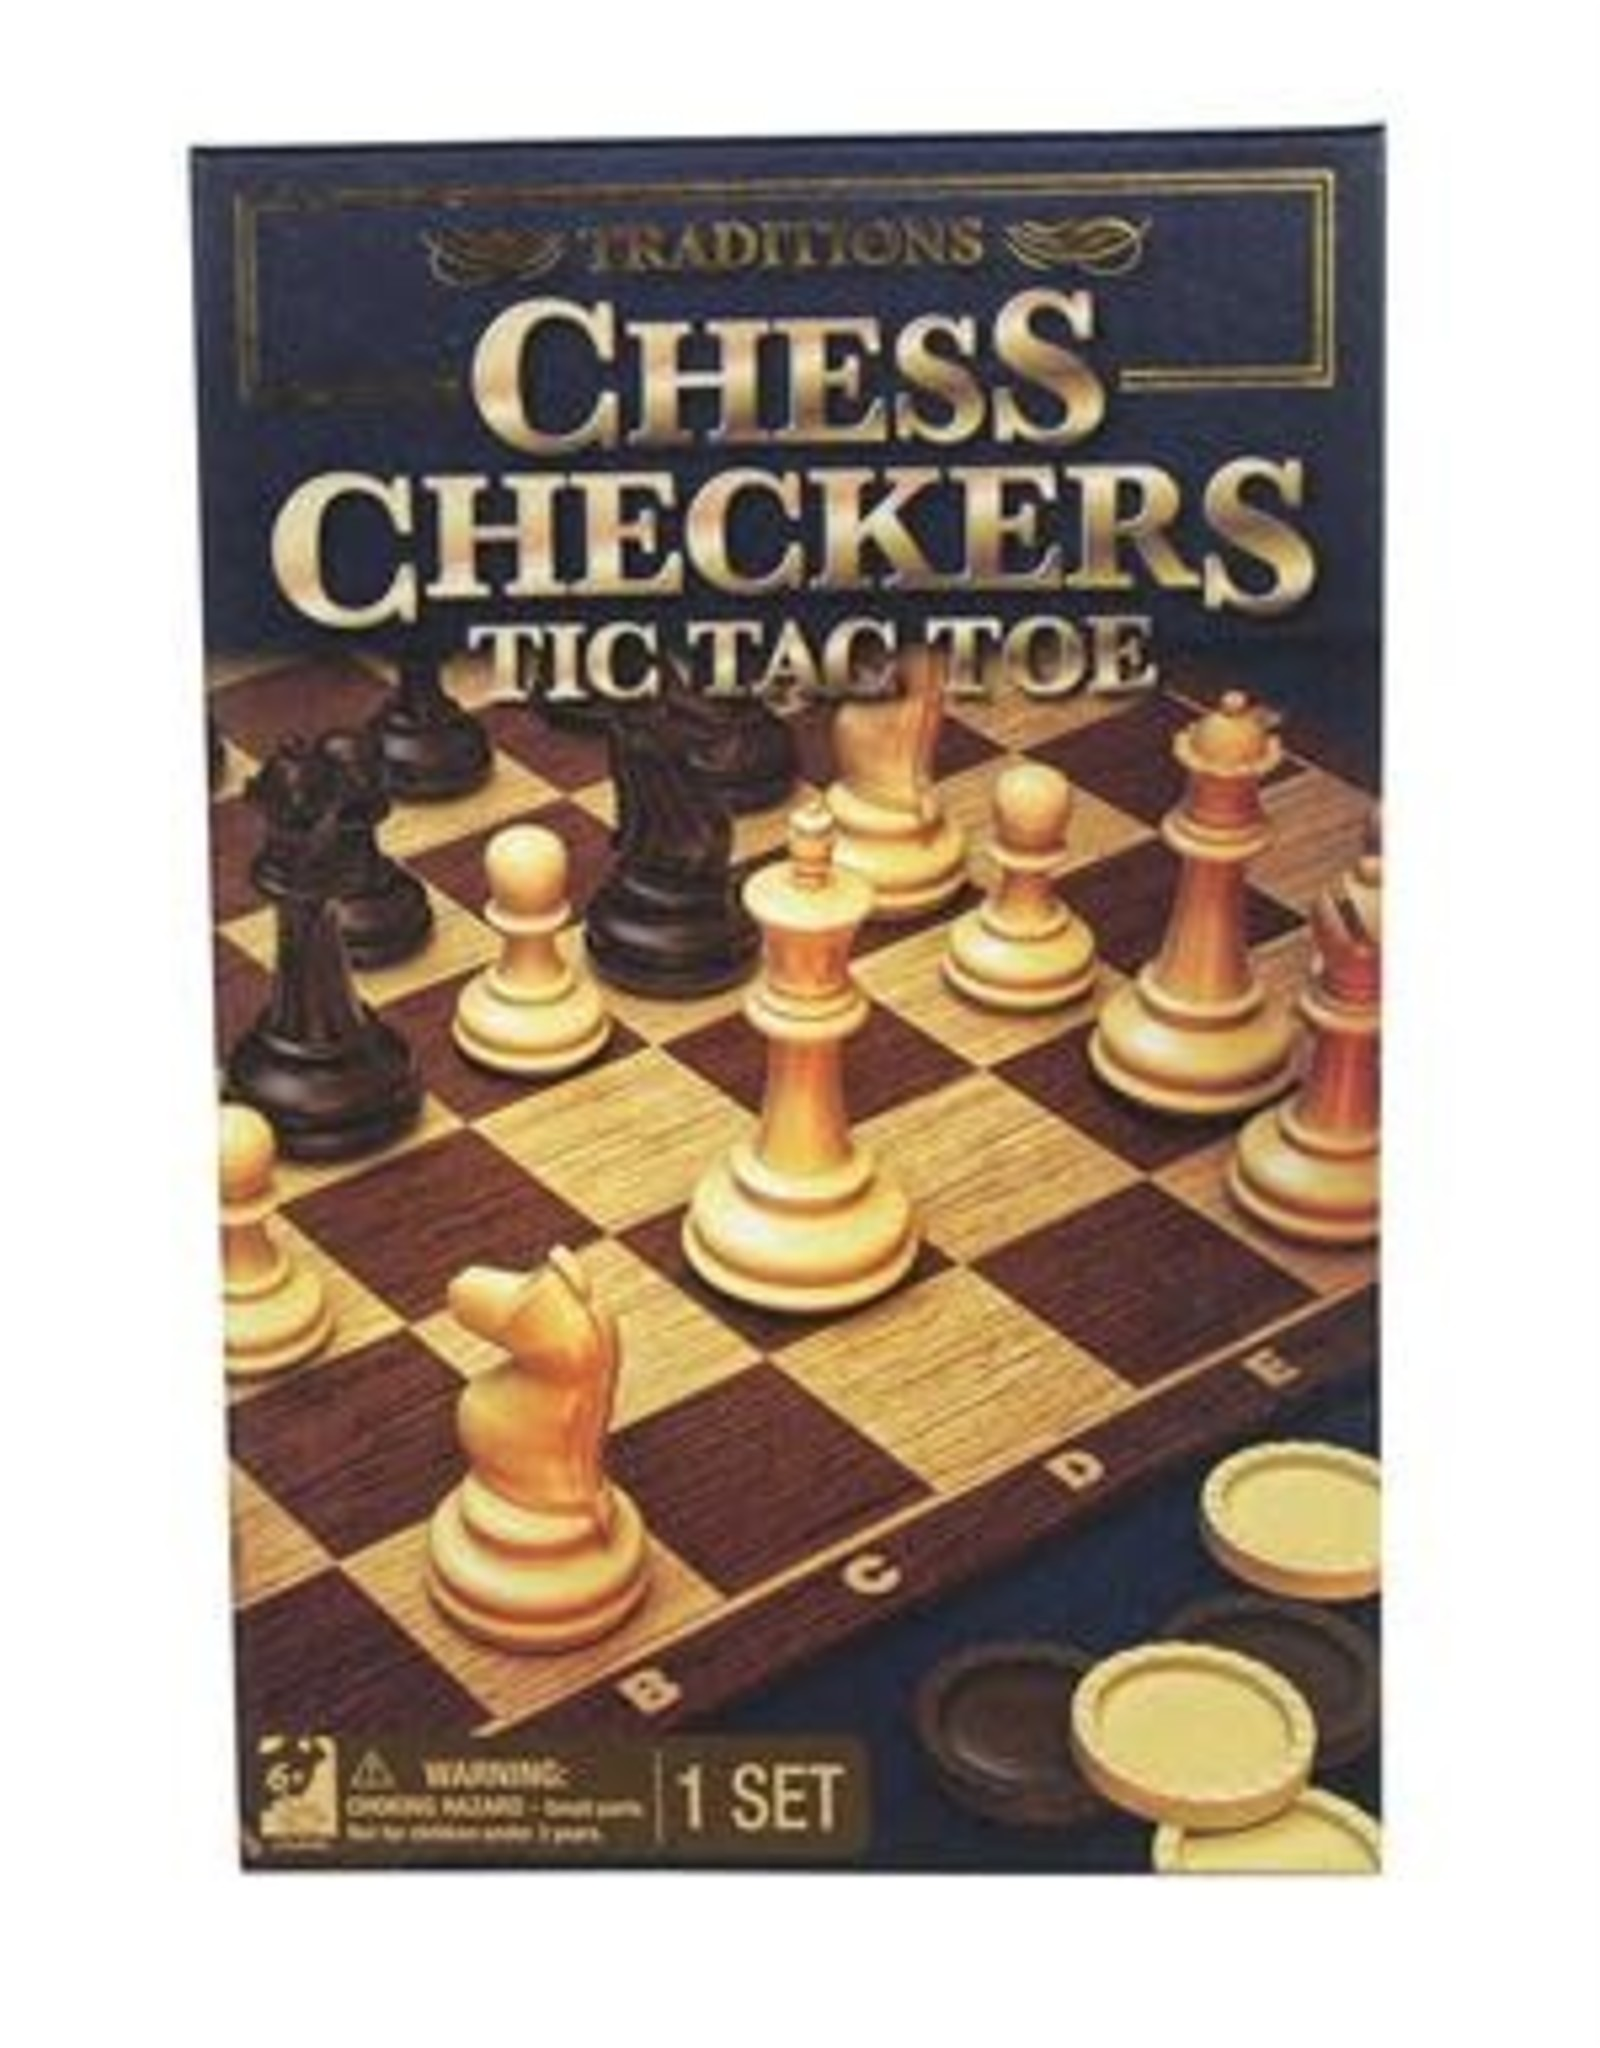 Gund/Spinmaster Traditions Chess, Checkers, and Tic Tac  Toe